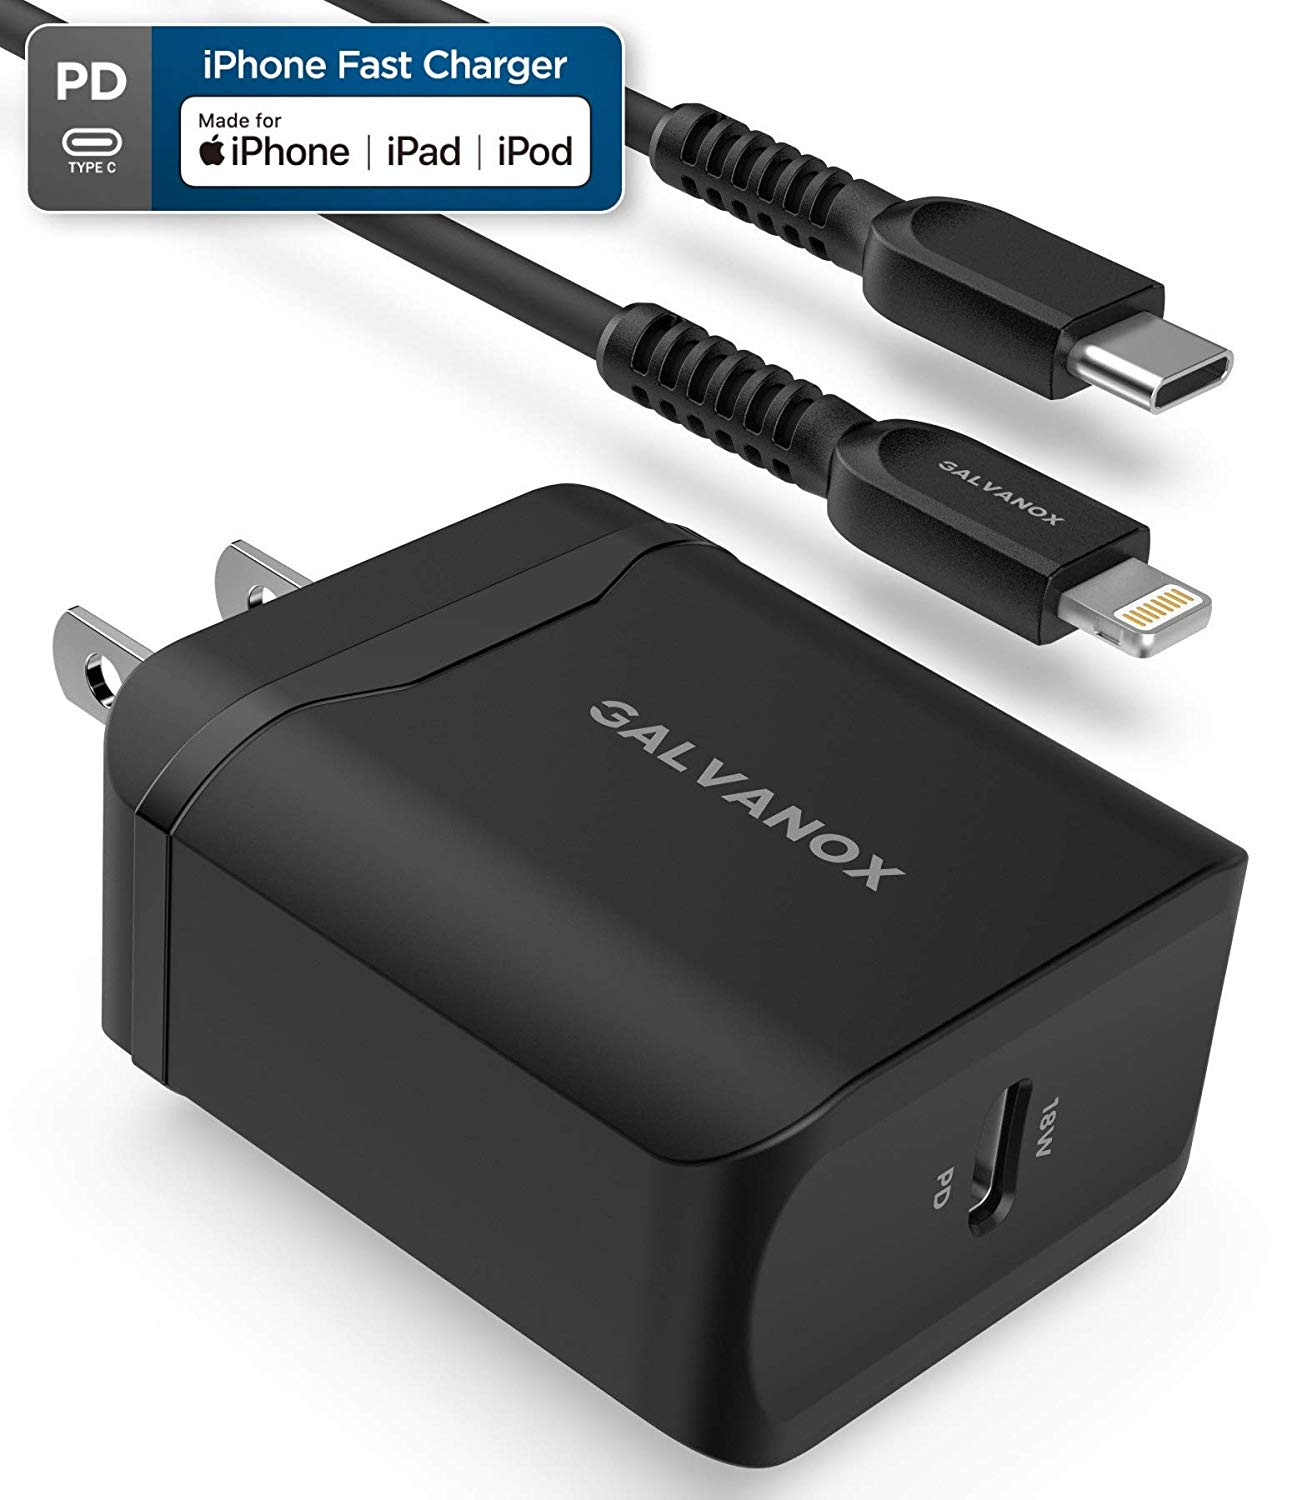 Galvanox Fast Charger for iPhone 11 Models (18W) Includes Apple MFi Certified Cable, USB C to Lightning with Rapid Charging PD Wall Plug (Supports